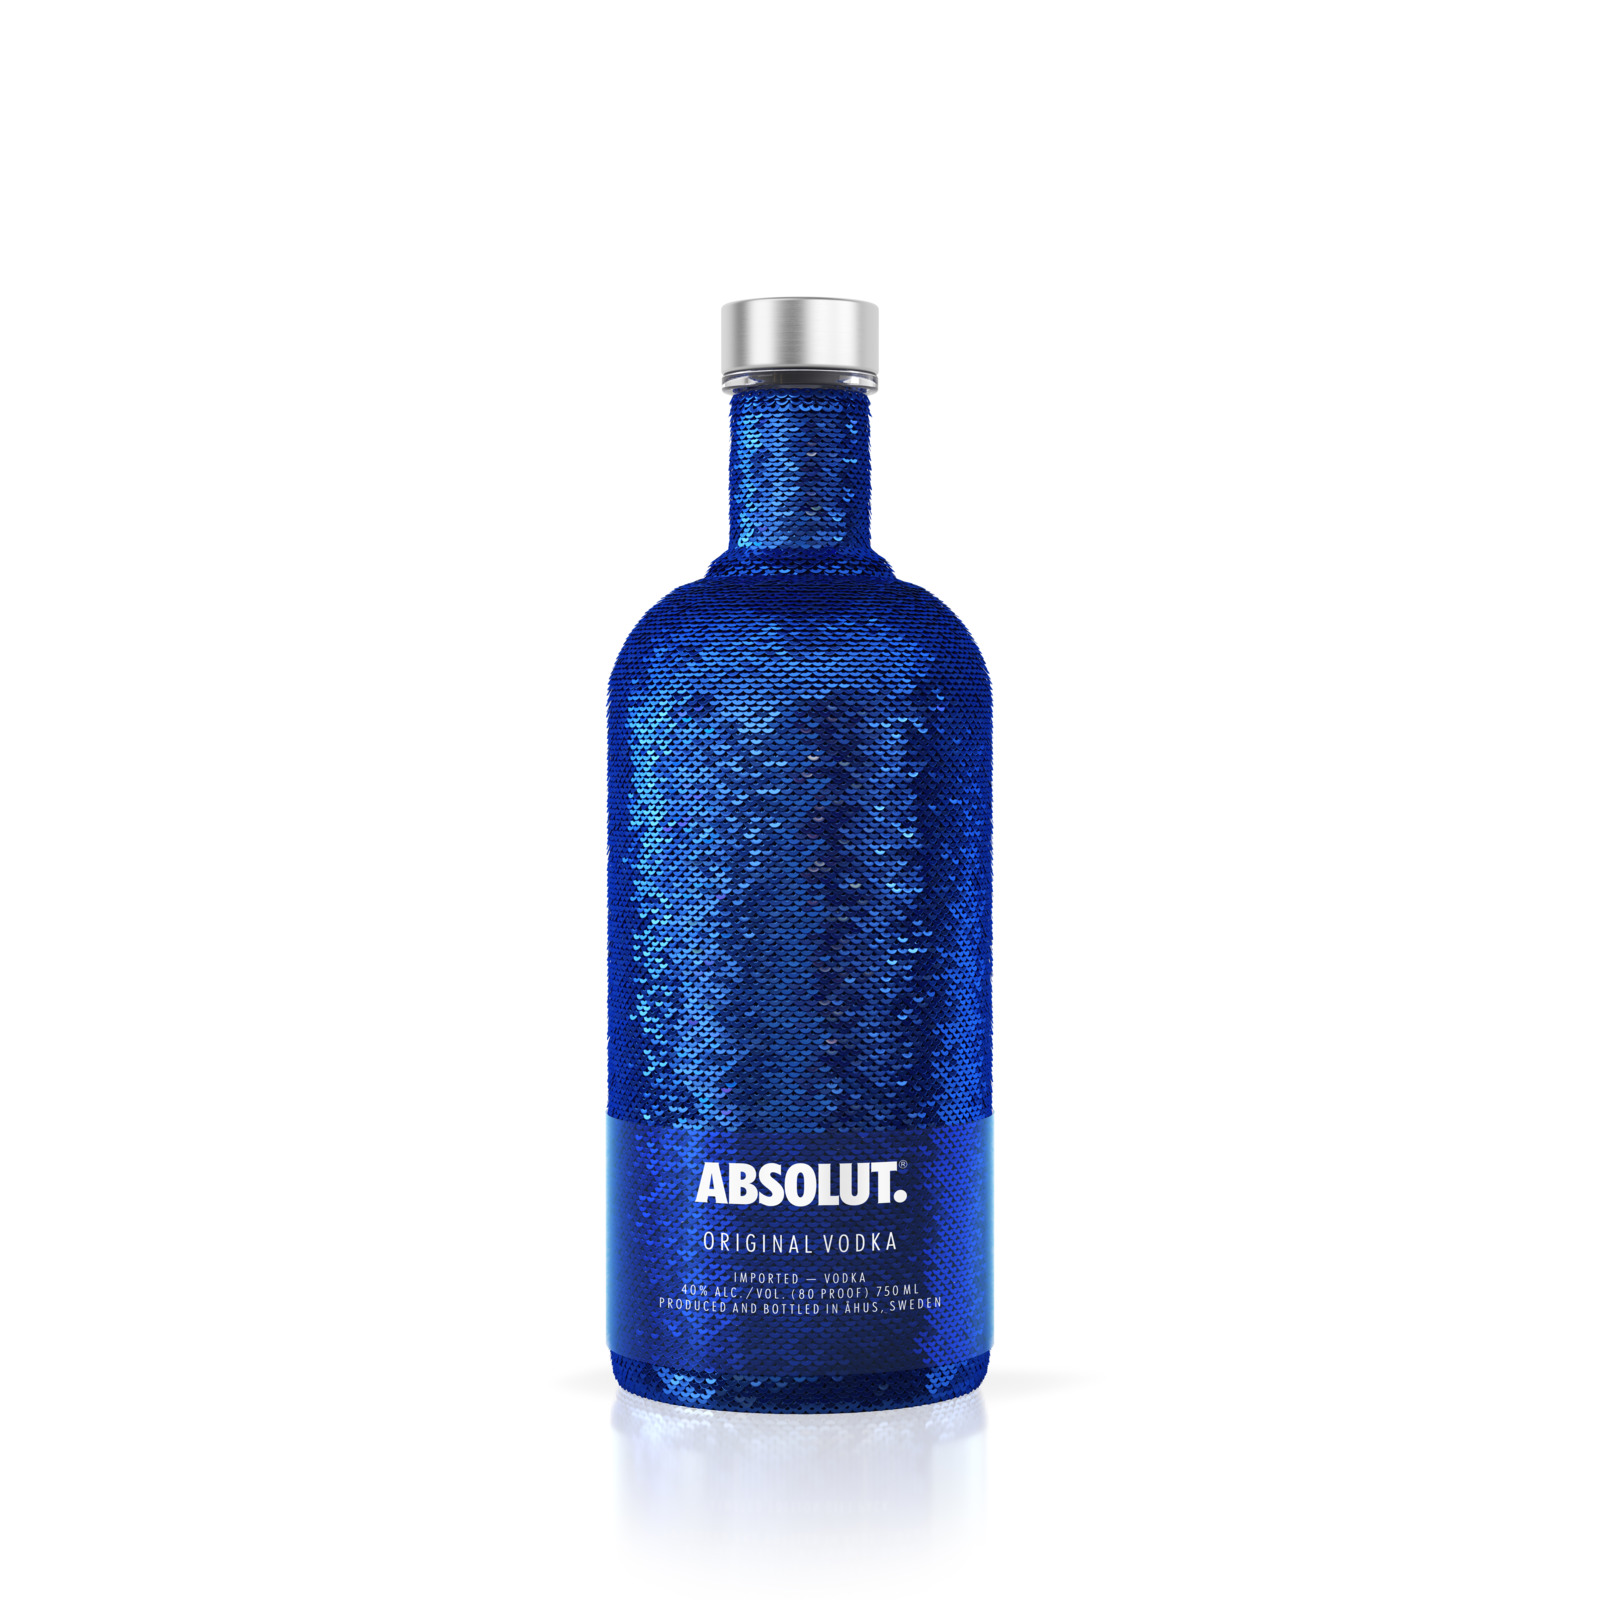 absolut-uncover-sequin-blog1217.jpg